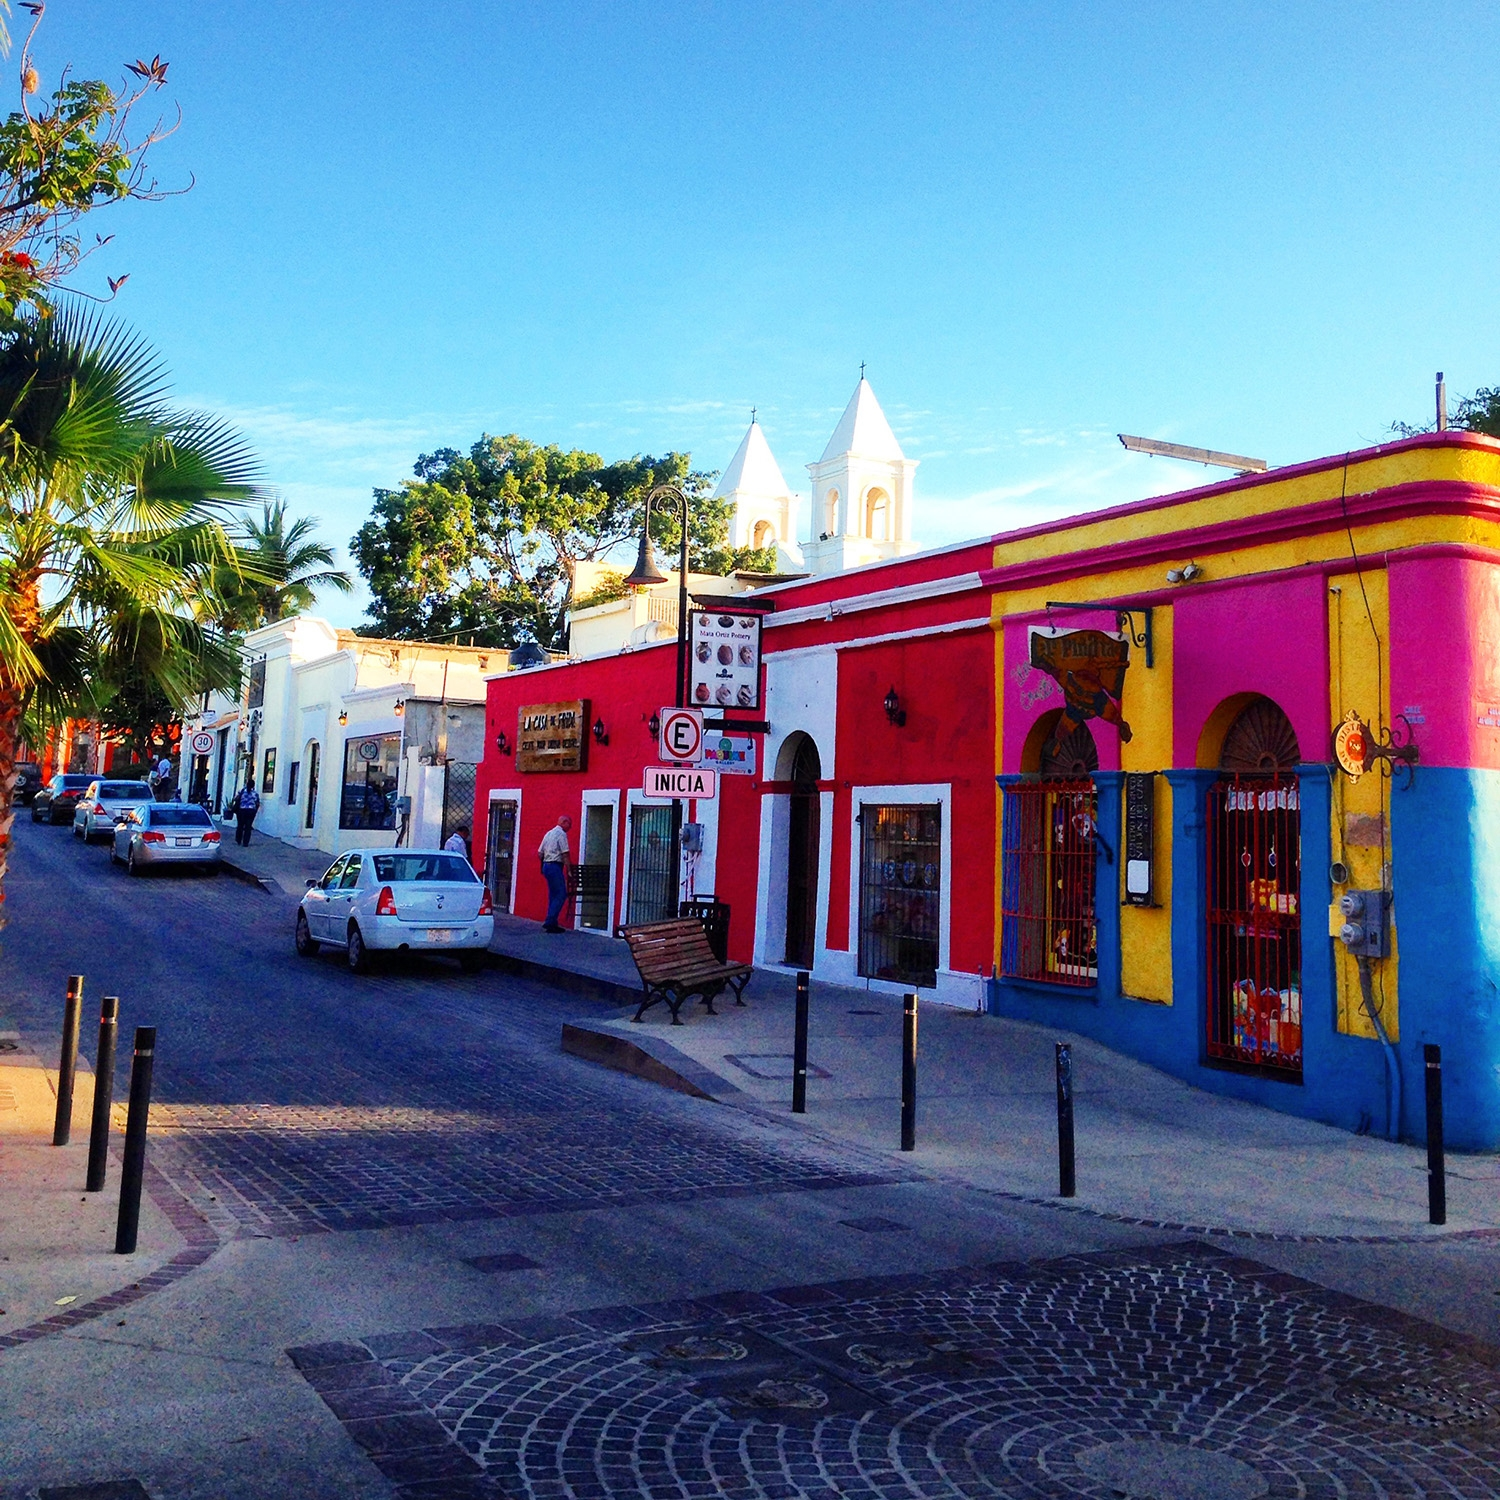 Vibrant building along the streets of San Jose Del Cabo